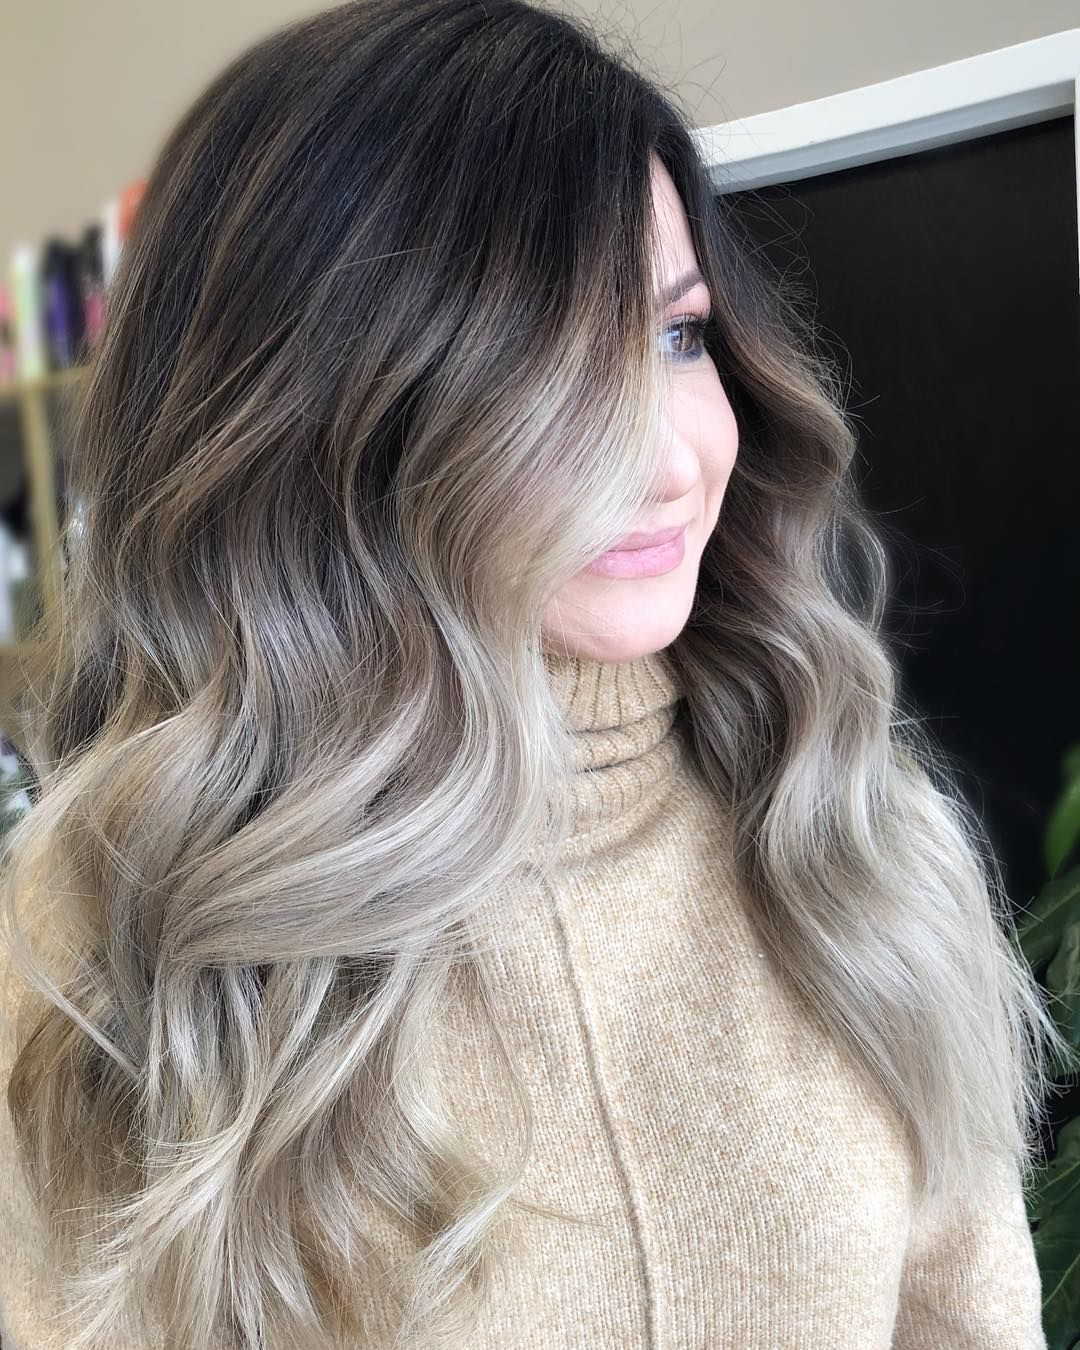 "TᗩᗷETᕼᗩ ᑕᗩᖇᑎᔕ on Instagram: ""You are so use to your features, you don't know how beautiful you look to a stranger. #beautiful @redken @pravana"" #ashblondebalayage"